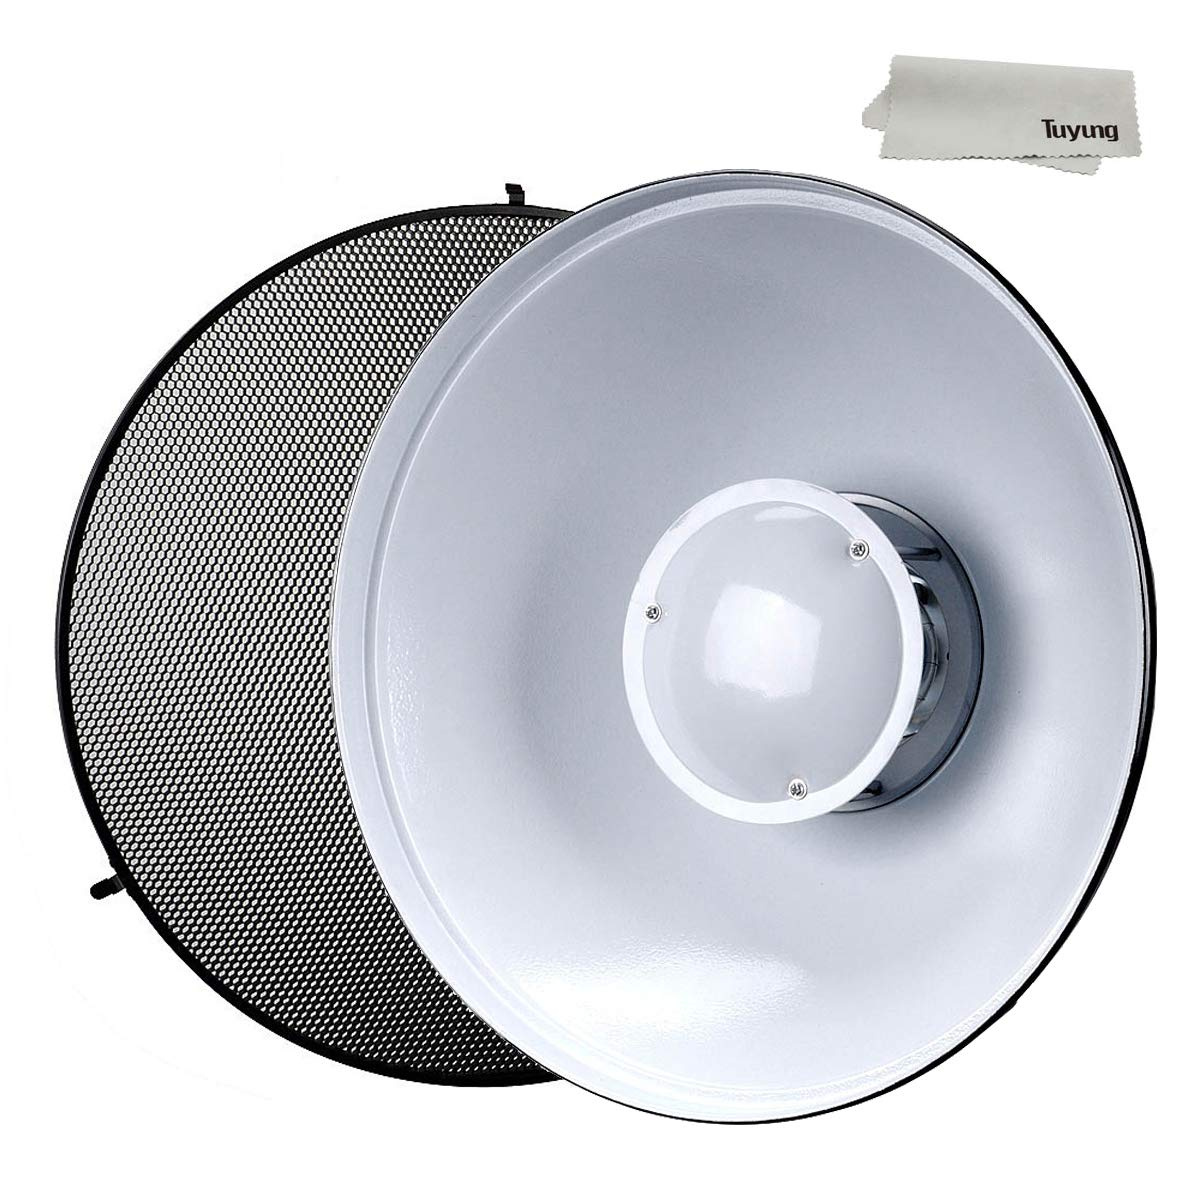 Godox 21'' 55cm Beauty Dish Reflector with Honeycomb Grid for Bowens Mount Studio Flash Strobe Monolight Such as Witstro AD400PRO AD600PRO AD600B AD600BM (Interior: White Bounce) by Godox